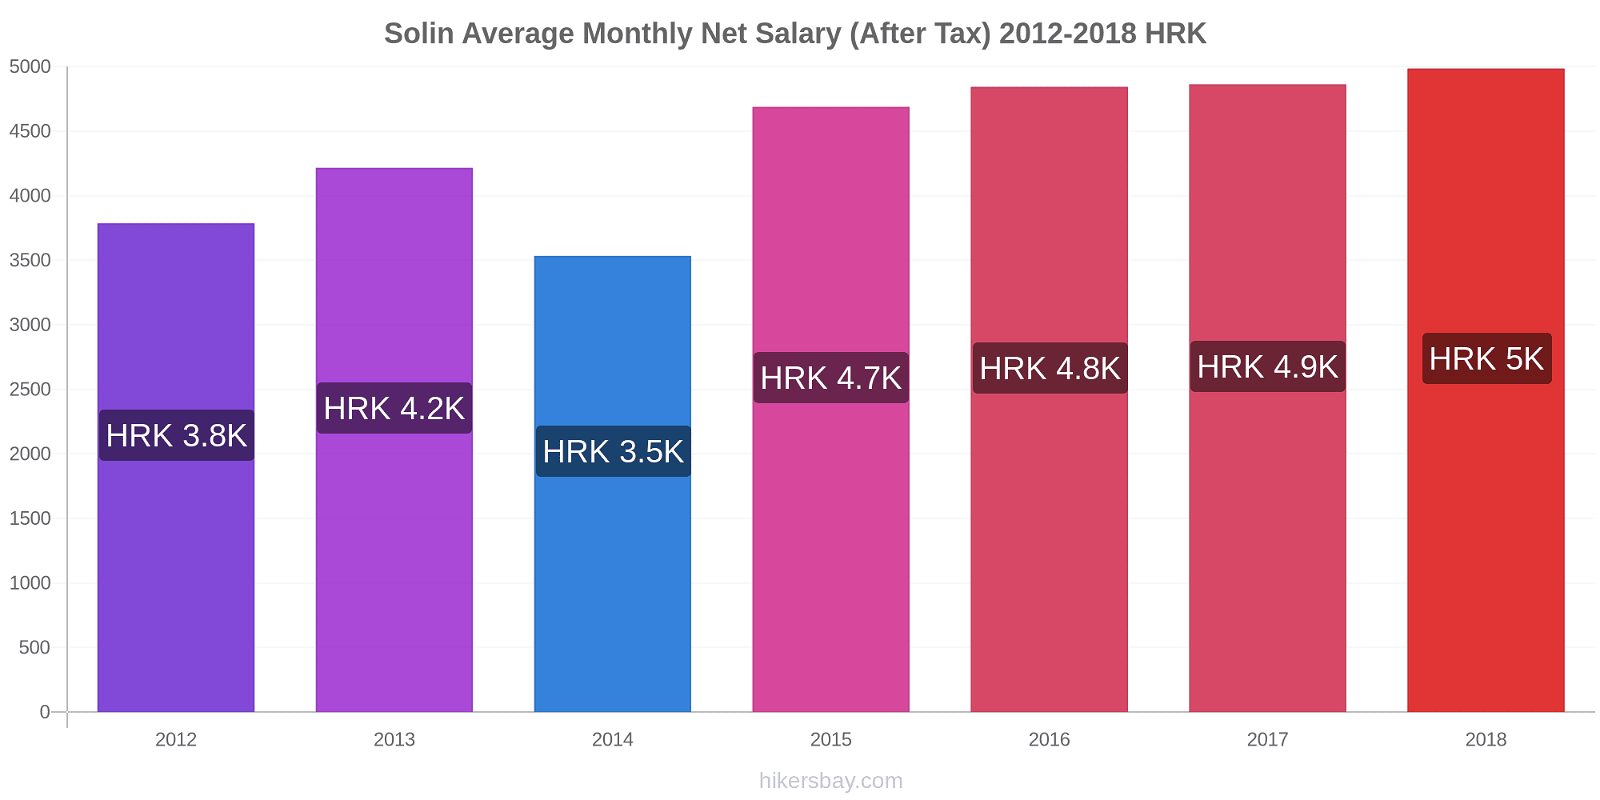 Solin price changes Average Monthly Net Salary (After Tax) hikersbay.com